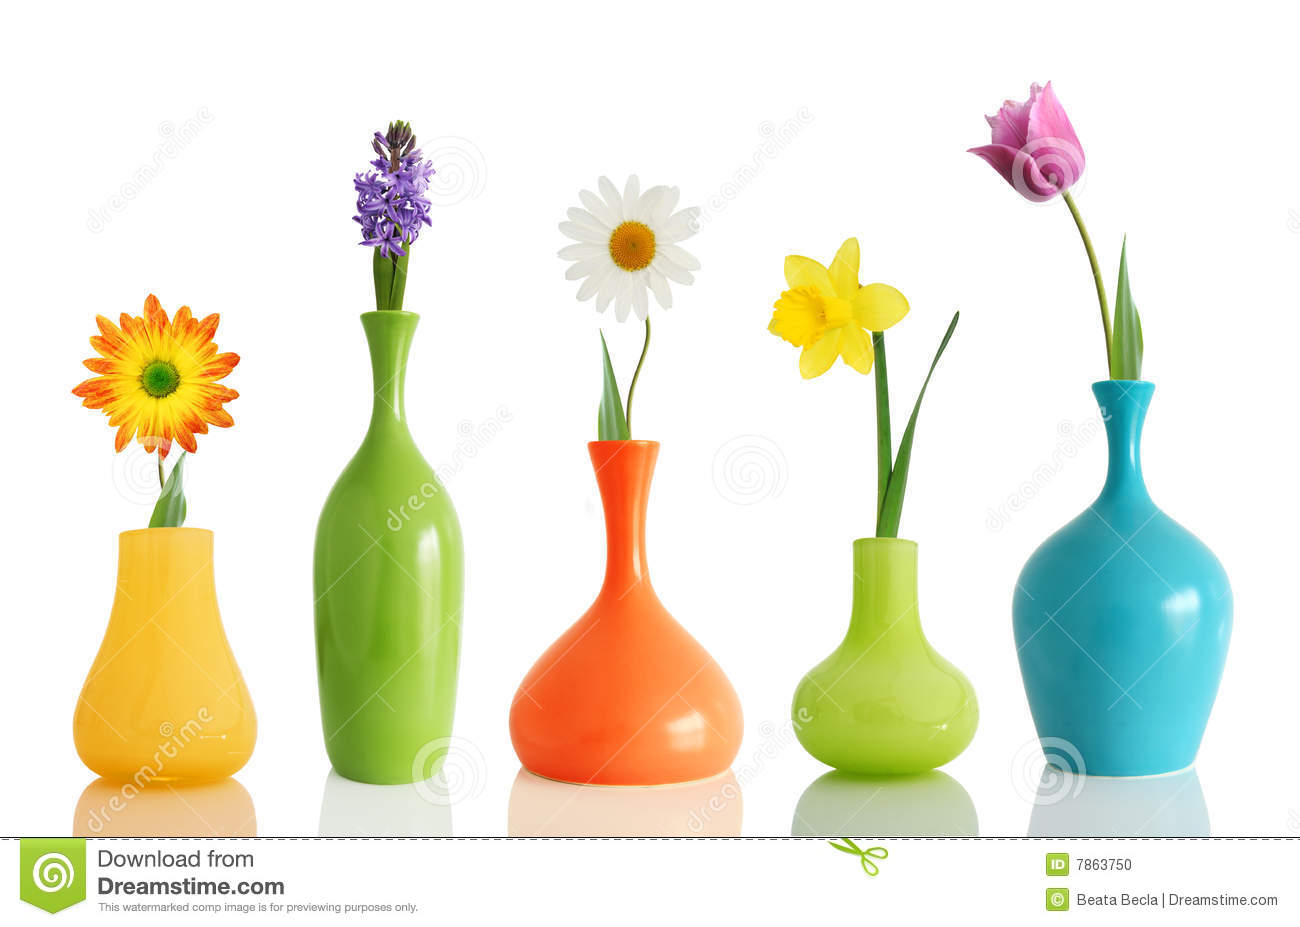 Spring flowers in vases stock photo image of gerber 12522956 spring flowers in vases stock photo mightylinksfo